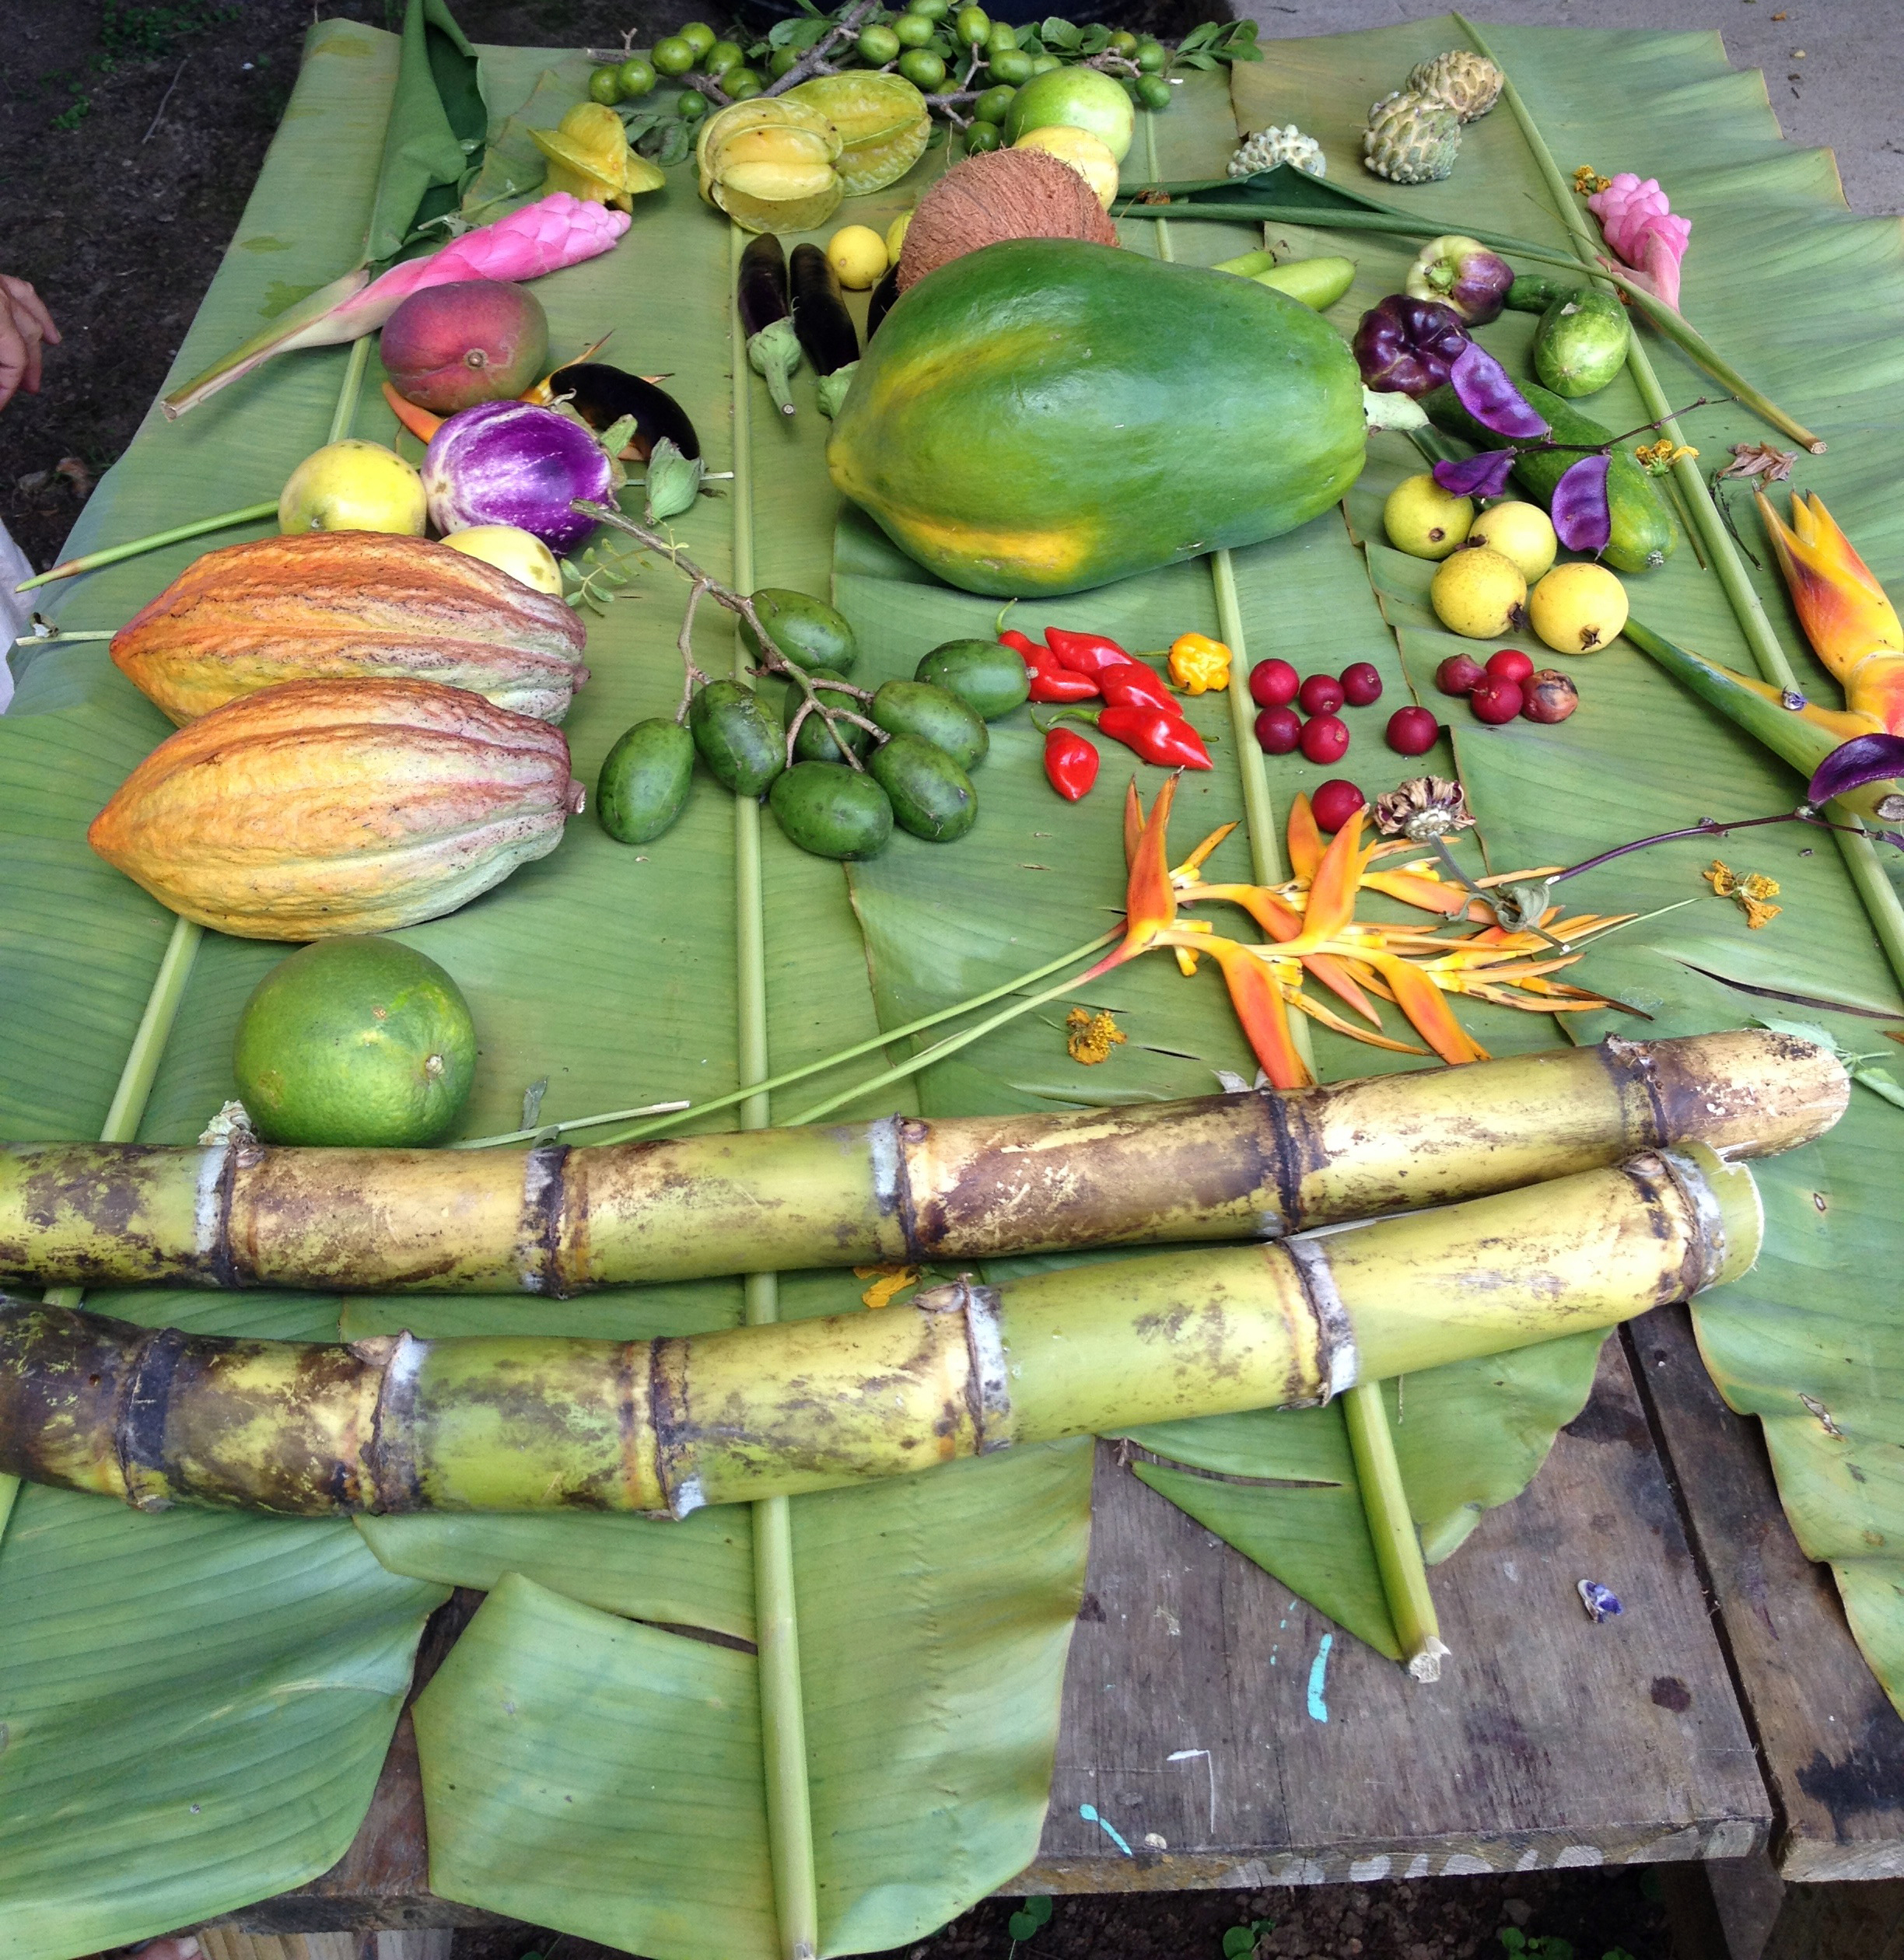 A brilliantly colored array of tropical fruit poised atop enormous banana leaves awaits the chef's pleasure.